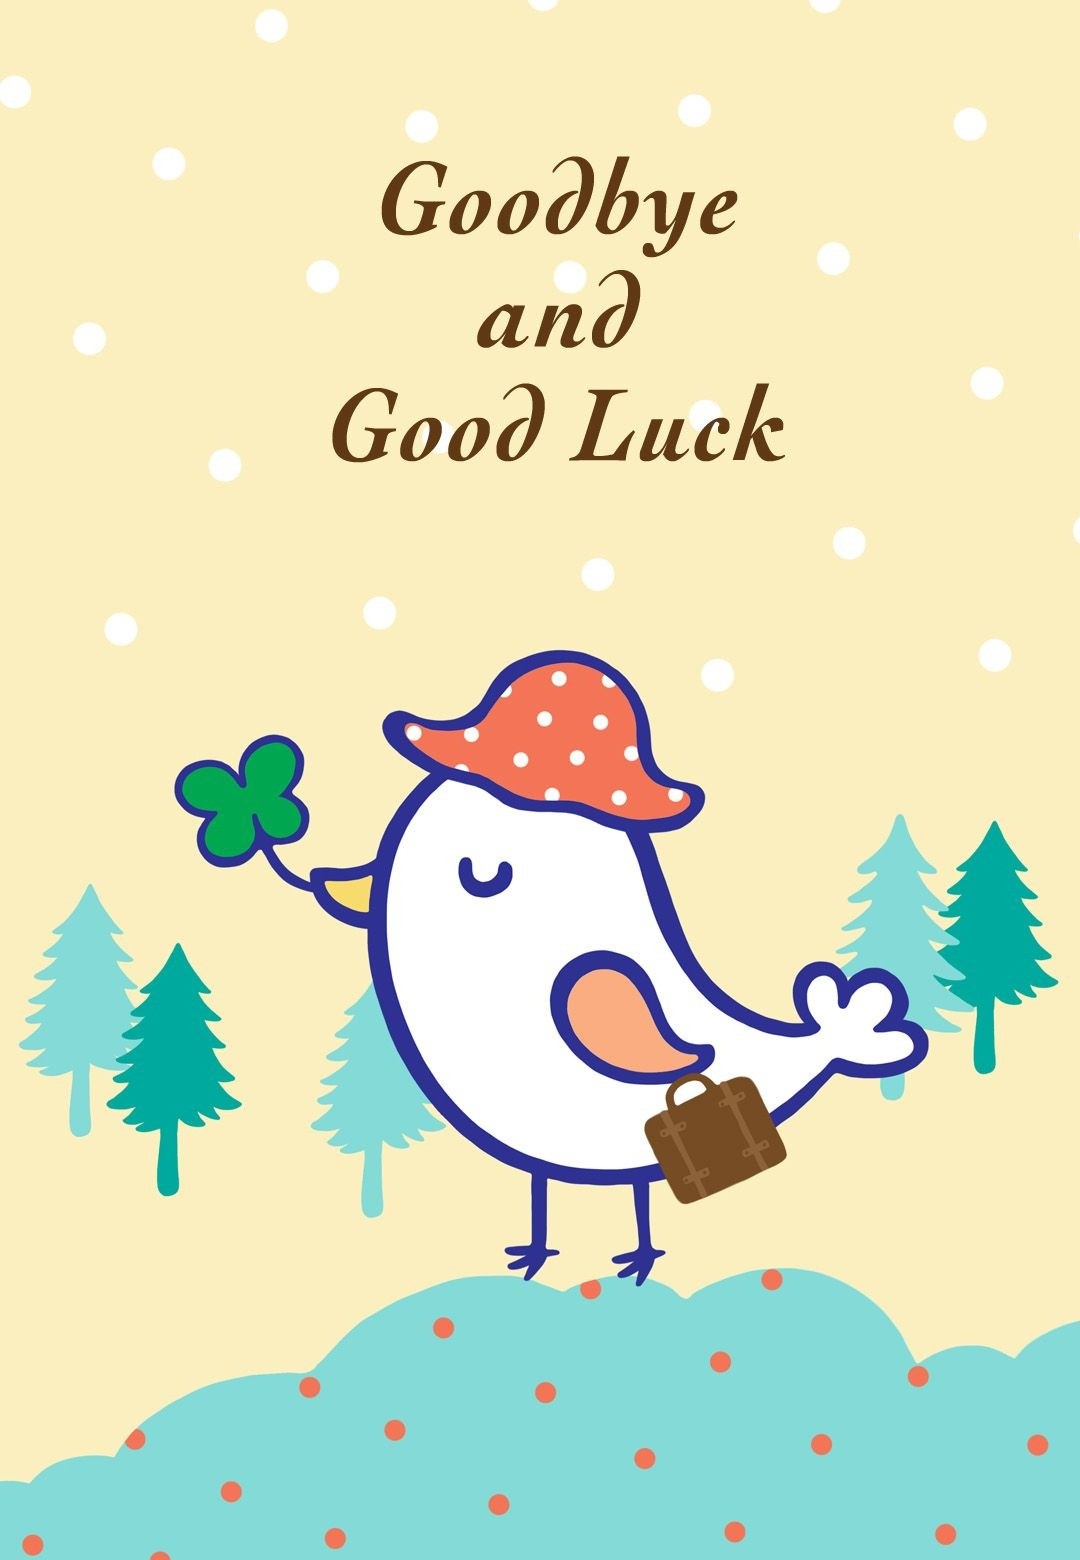 Free Printable Goodbye And Good Luck Greeting Card | Littlestar - Free Printable Goodbye Cards